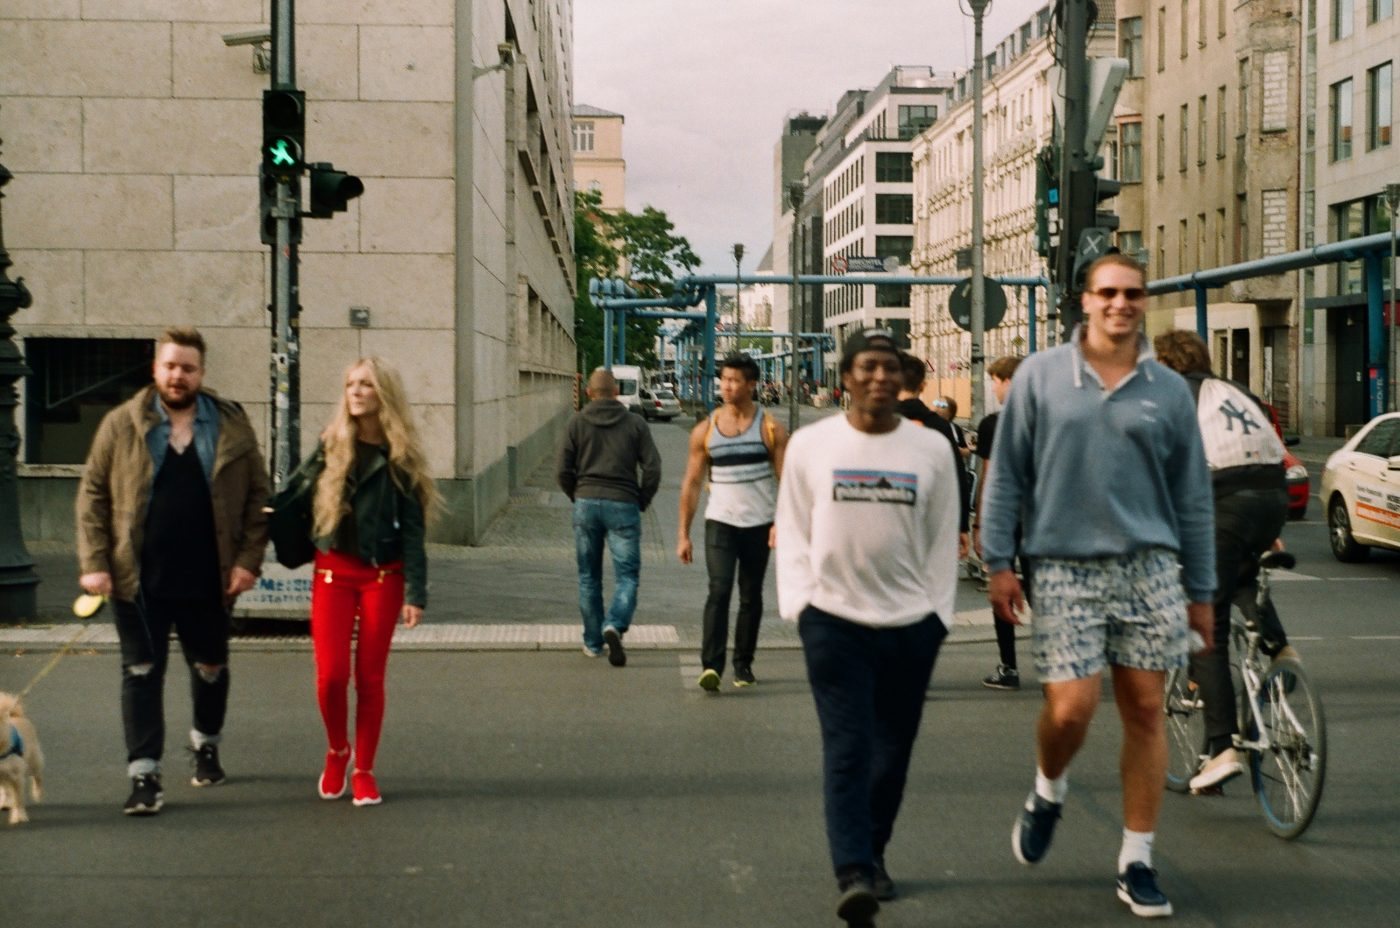 The Intersections of People and Place